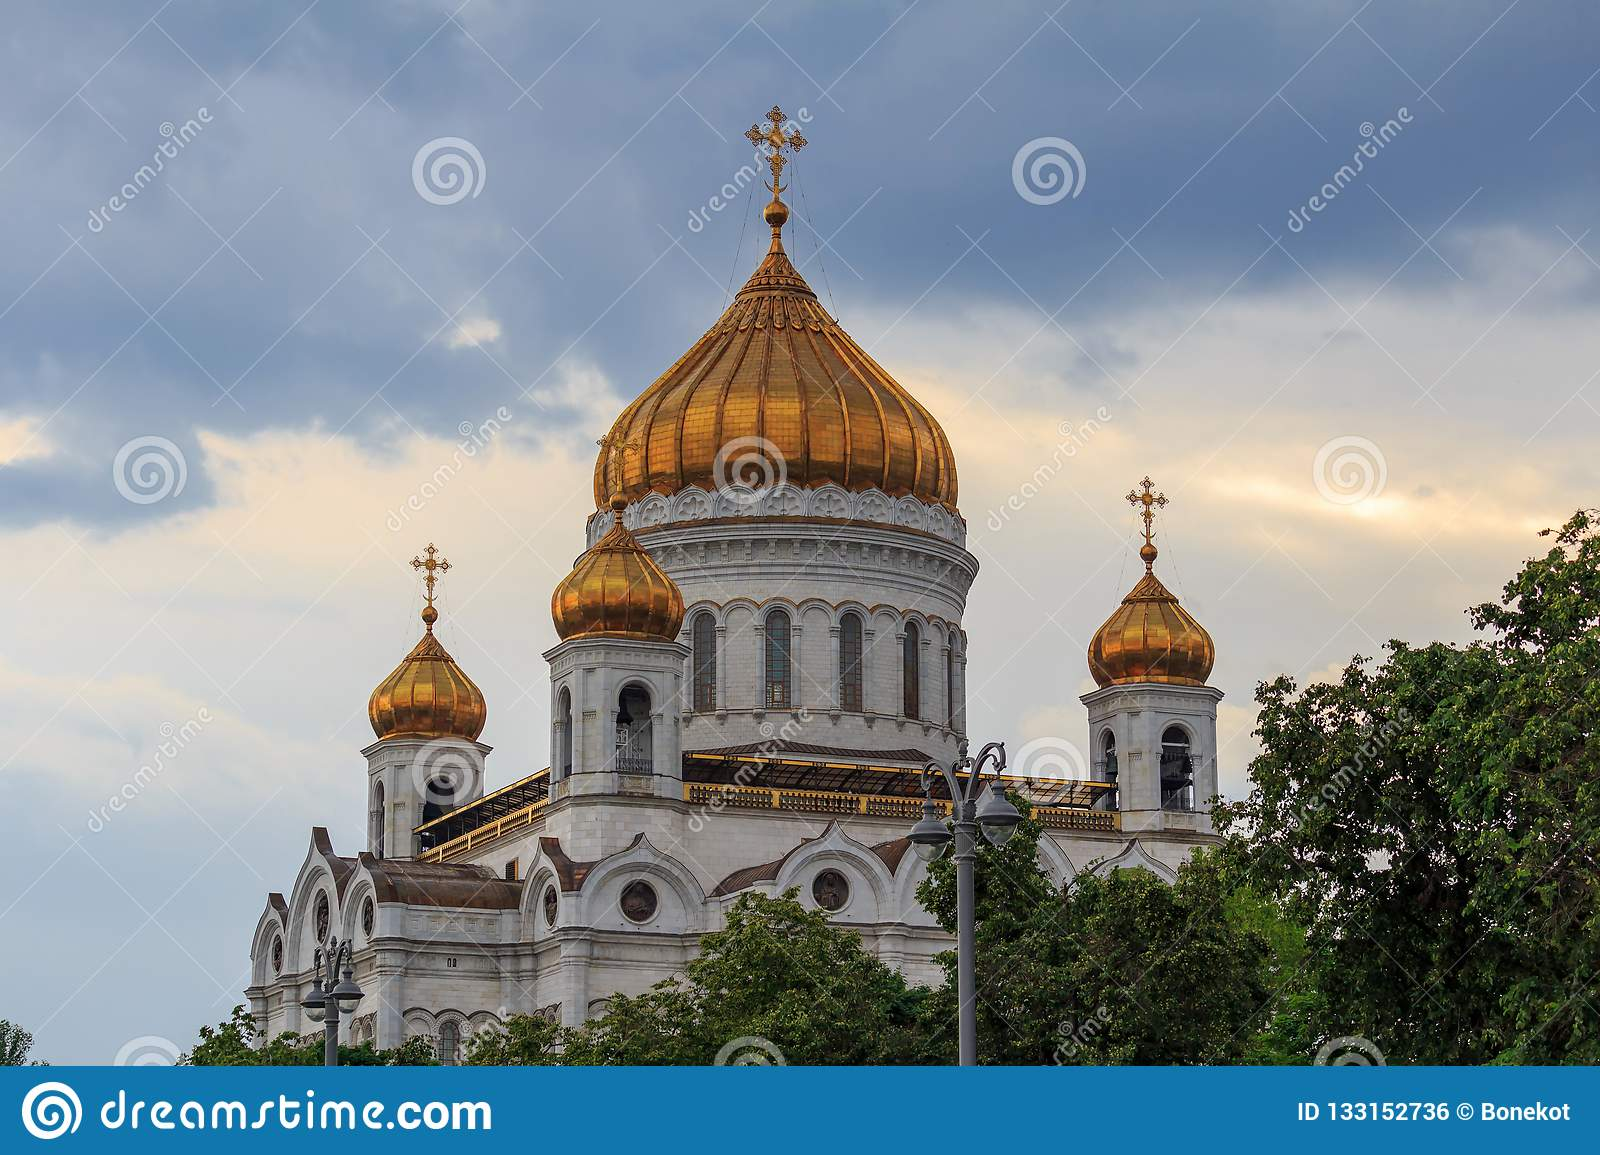 Moscow, Russia - June 19, 2018: Golden domes of Cathedral of Christ the Saviour in Moscow against dramatic sky